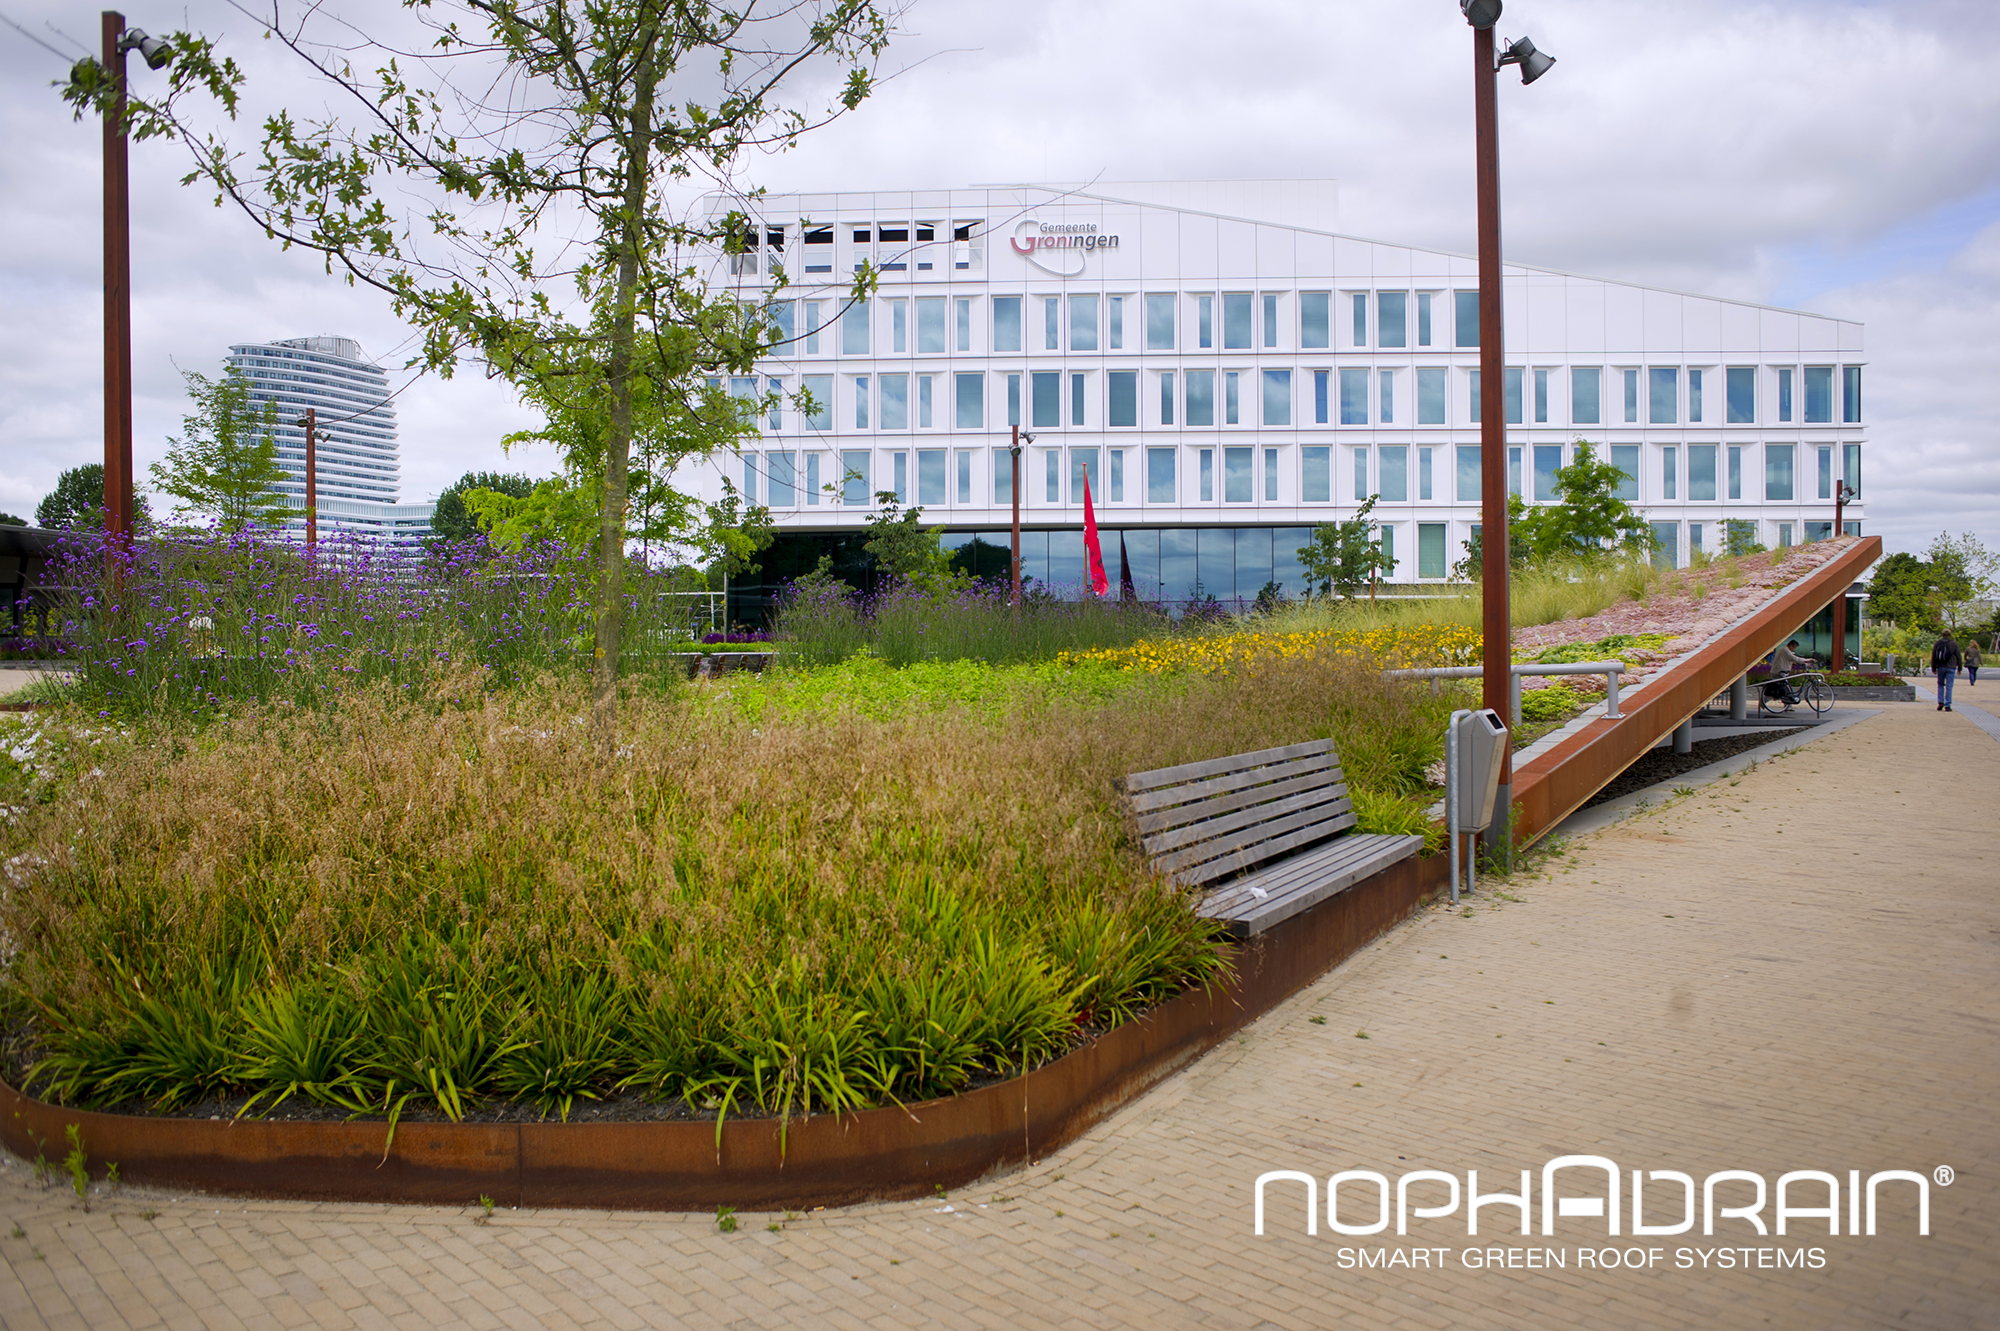 extensive green roof system by nophadrain archello. Black Bedroom Furniture Sets. Home Design Ideas